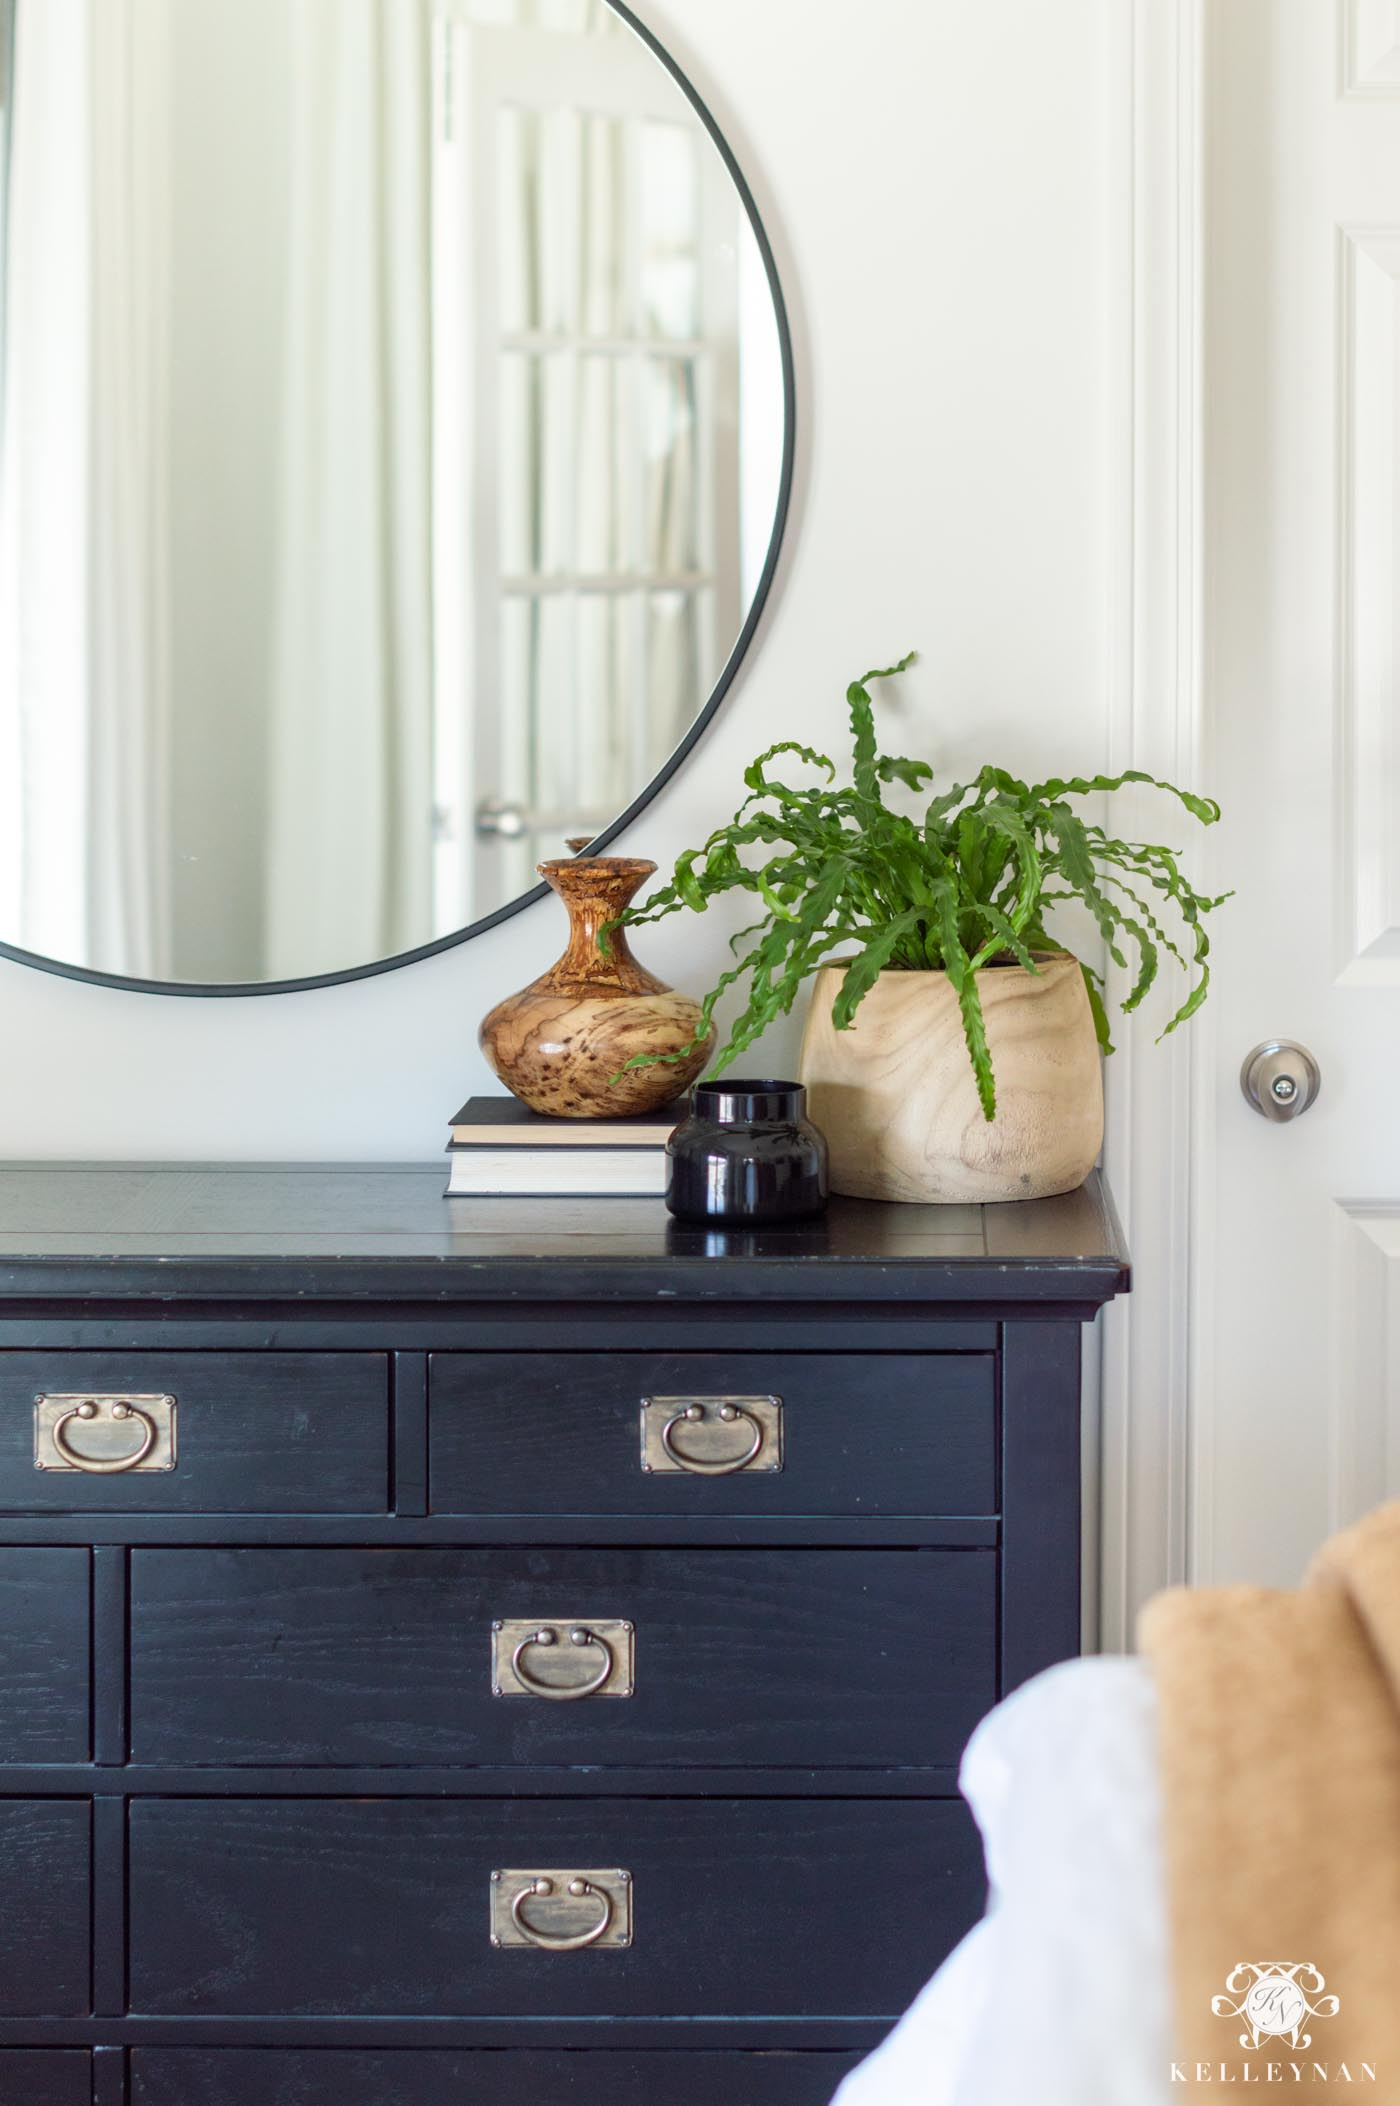 Simple Dresser Decor and Styling in the Bedroom